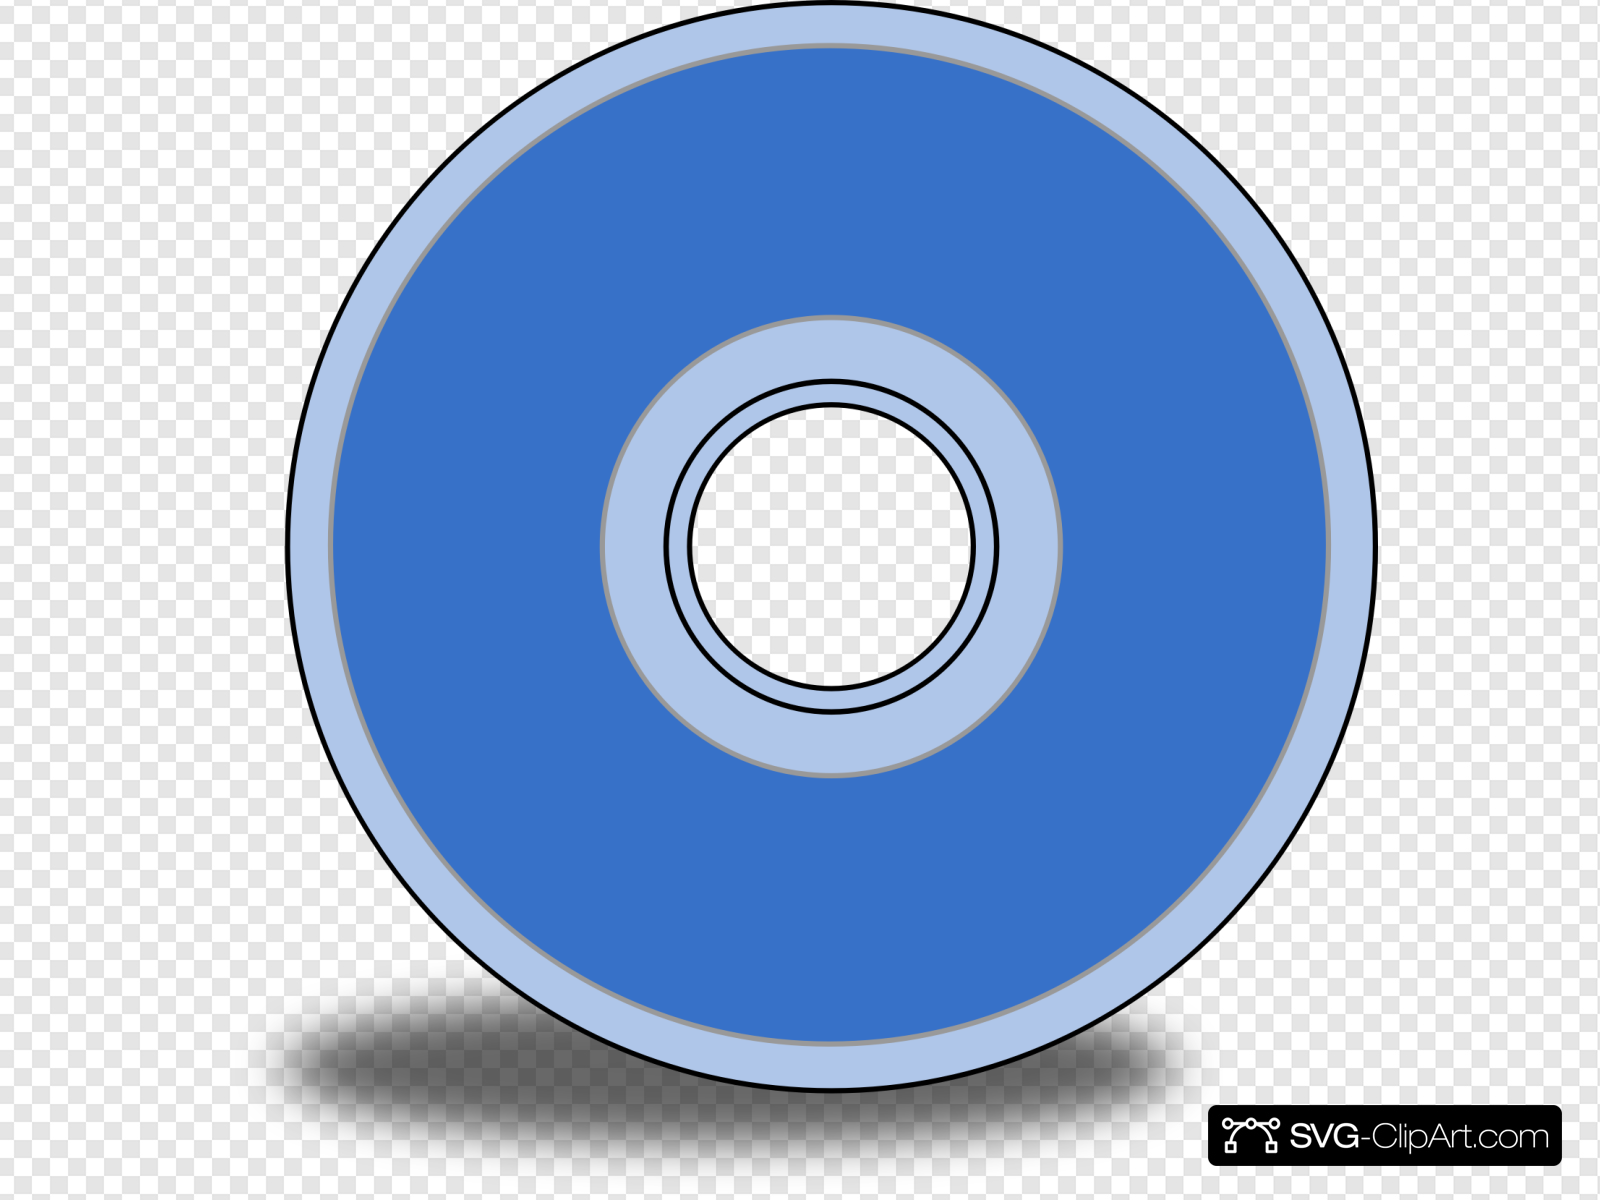 Cd clipart svg. Clip art icon and